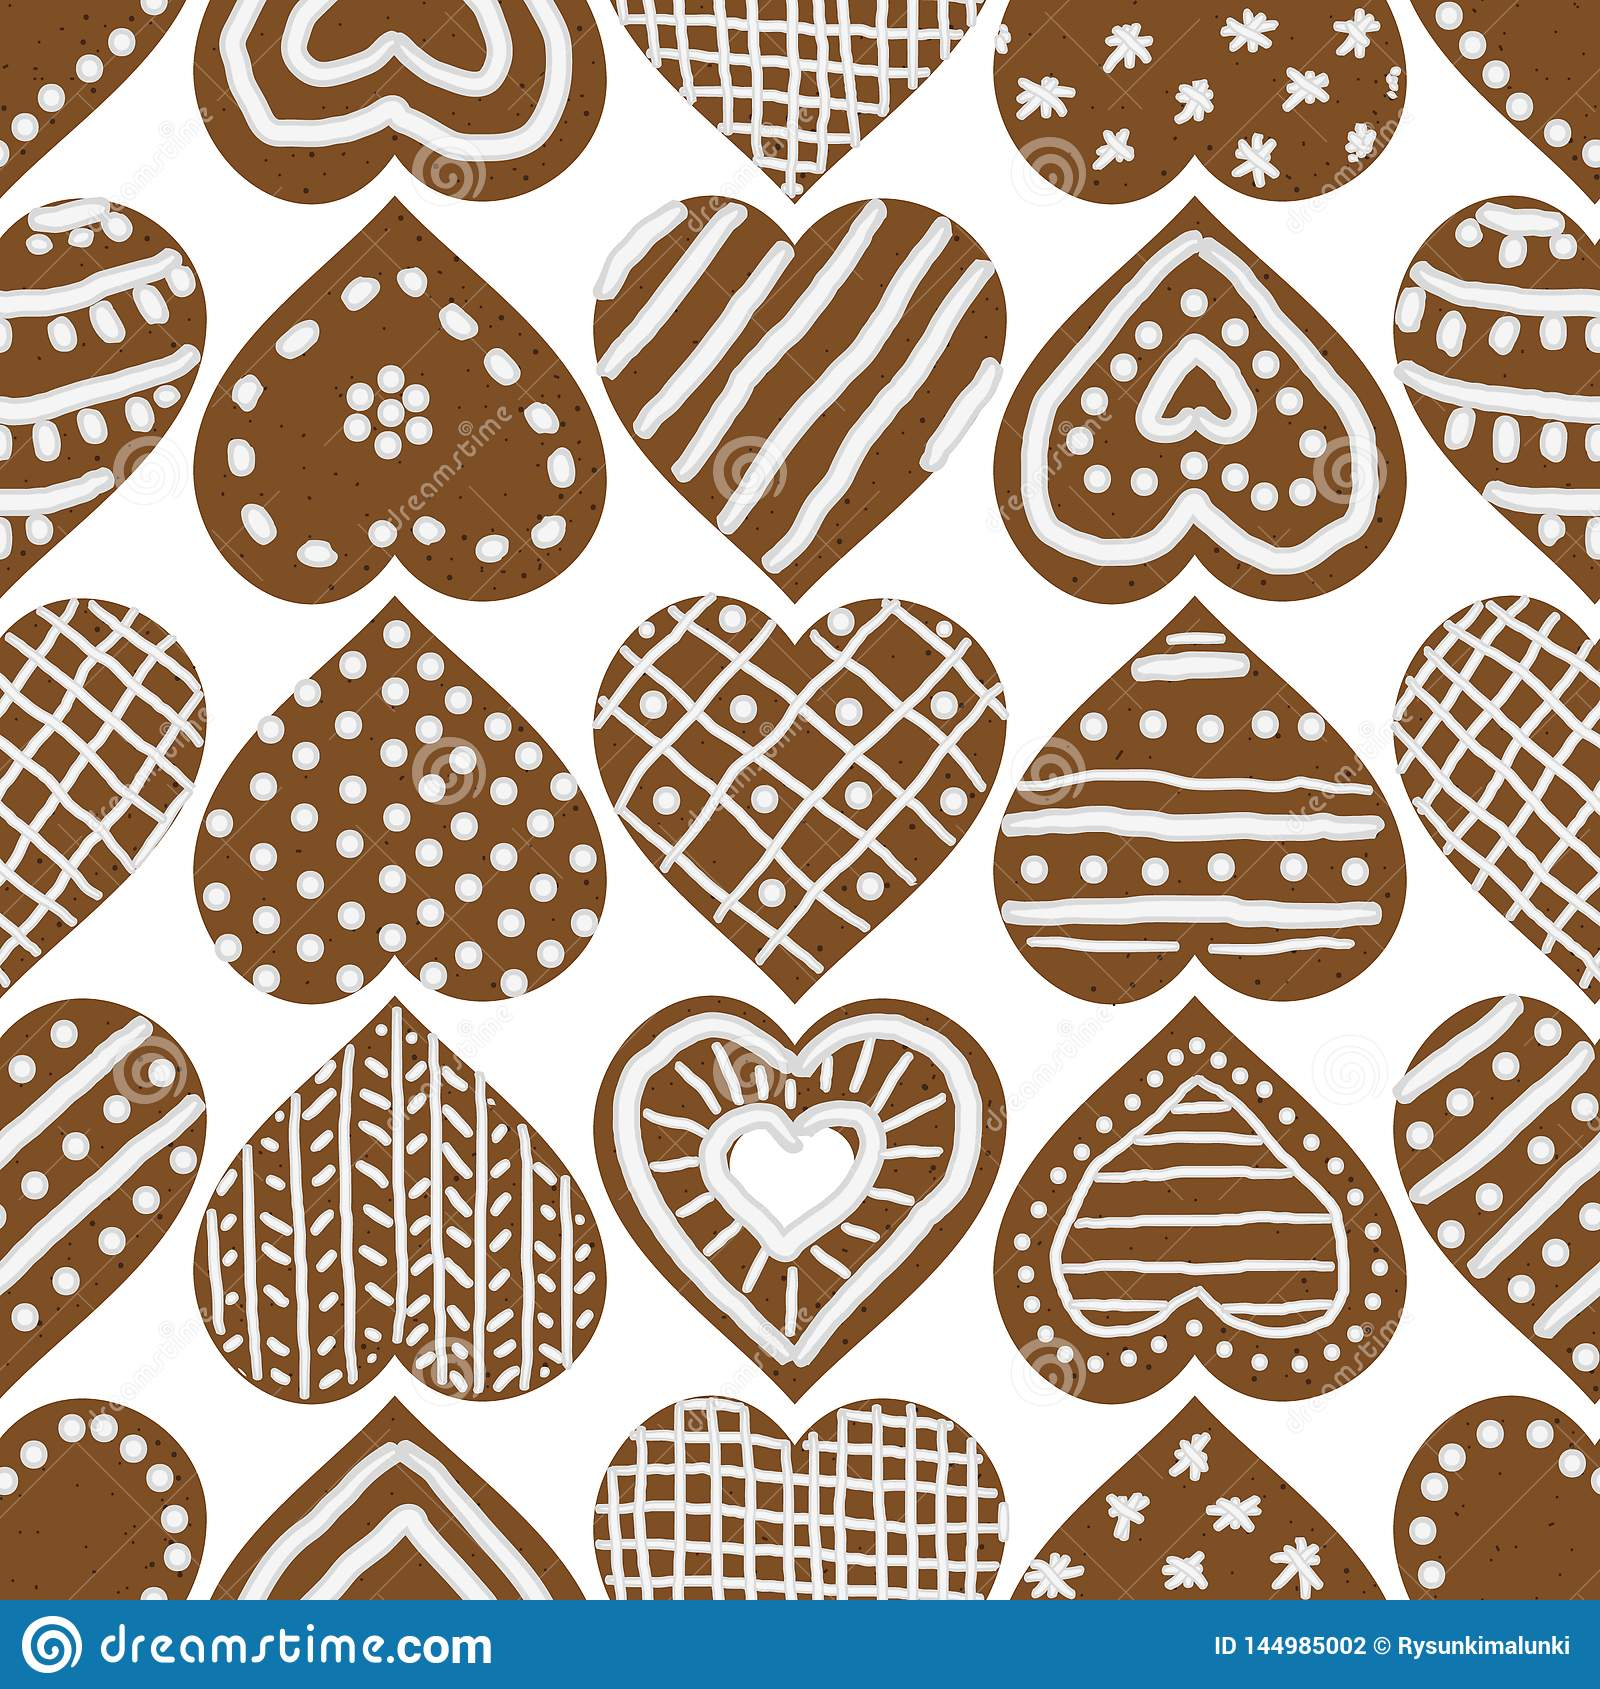 Christmas seamless vector pattern with iced gingerbread heart cookies